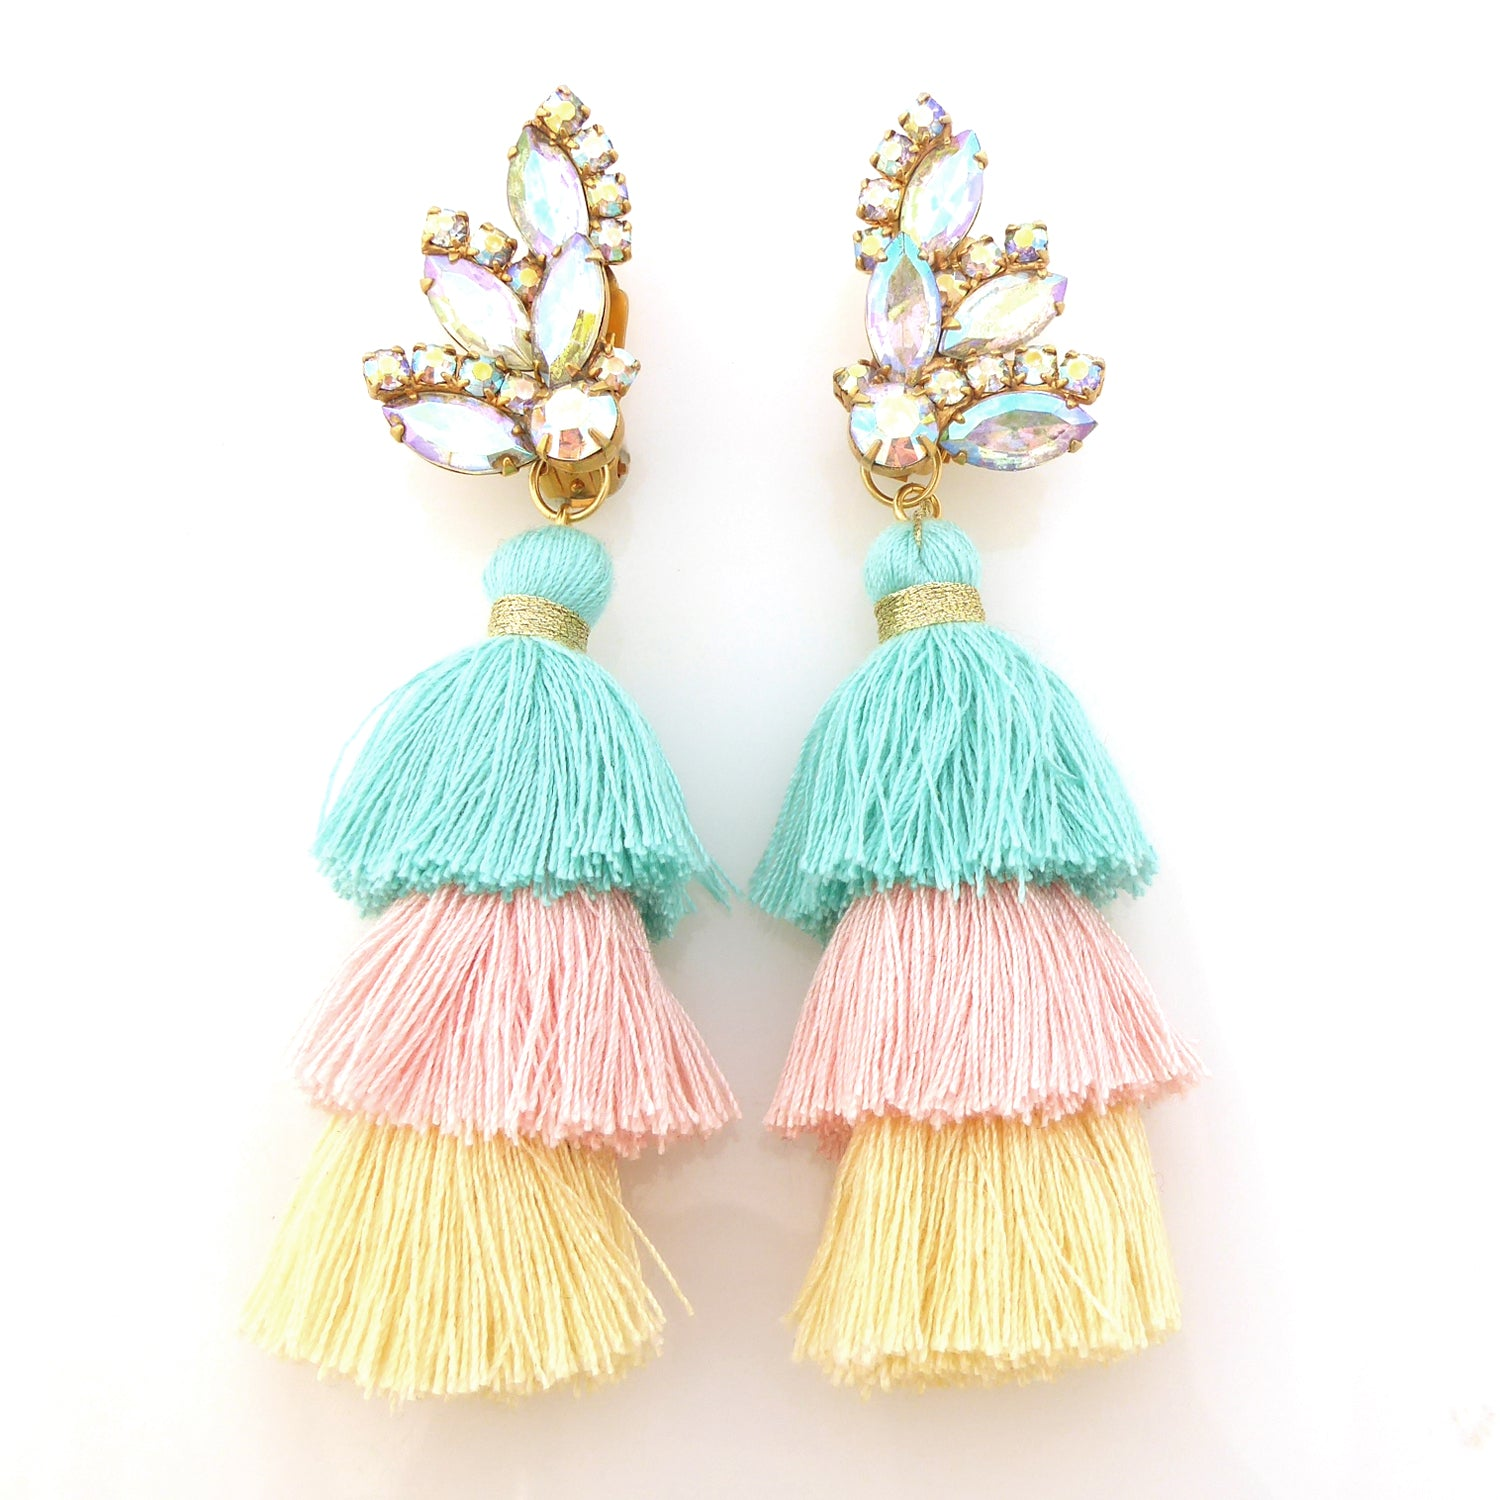 Iridescent rhinestone tassel earrings by Jenny Dayco 1